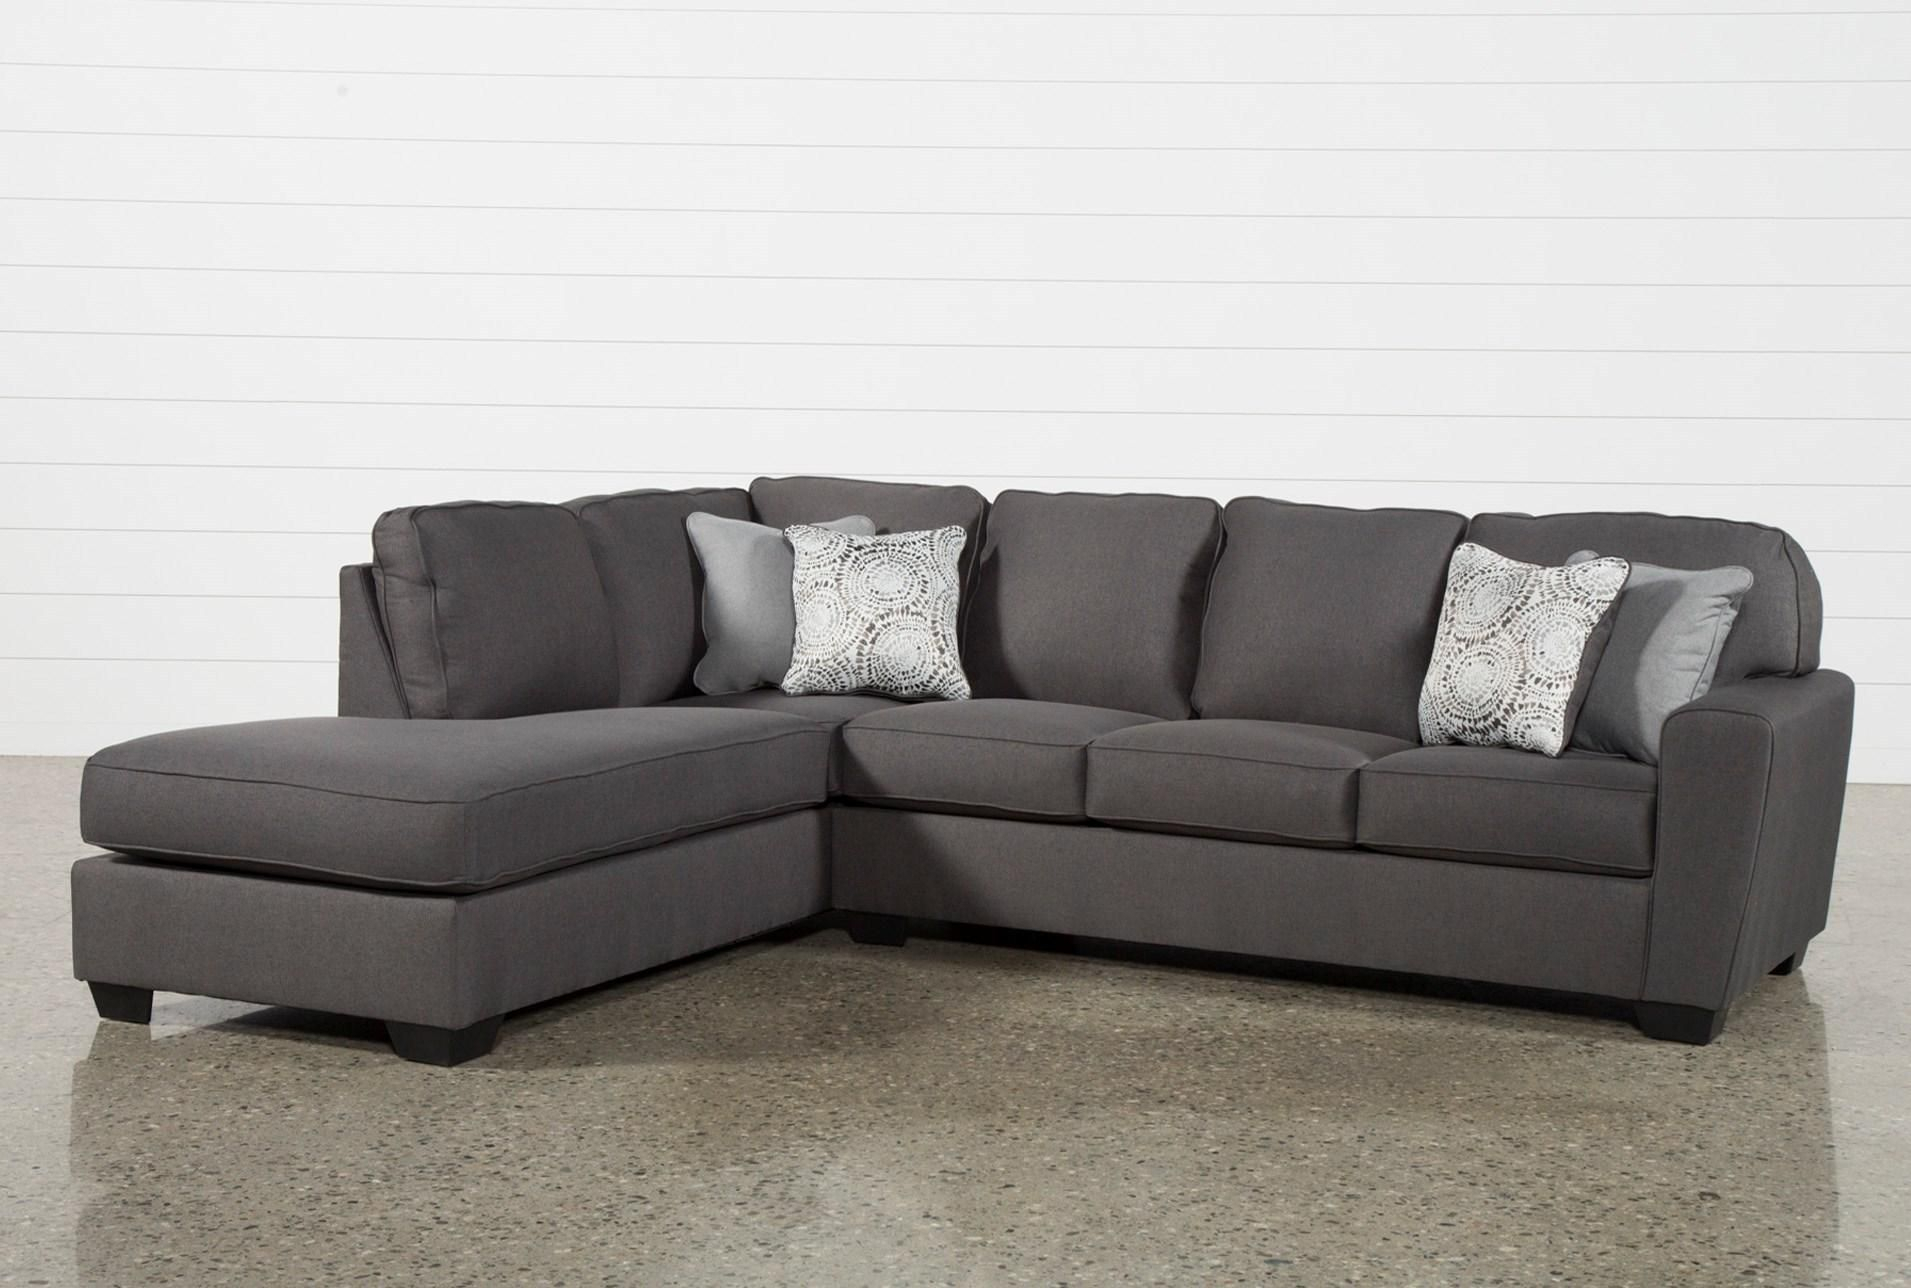 With So Many Ways To Lounge For Less, Our Mcdade Graphite 2 Piece Inside Mcdade Ash Sofa Chairs (Image 25 of 25)